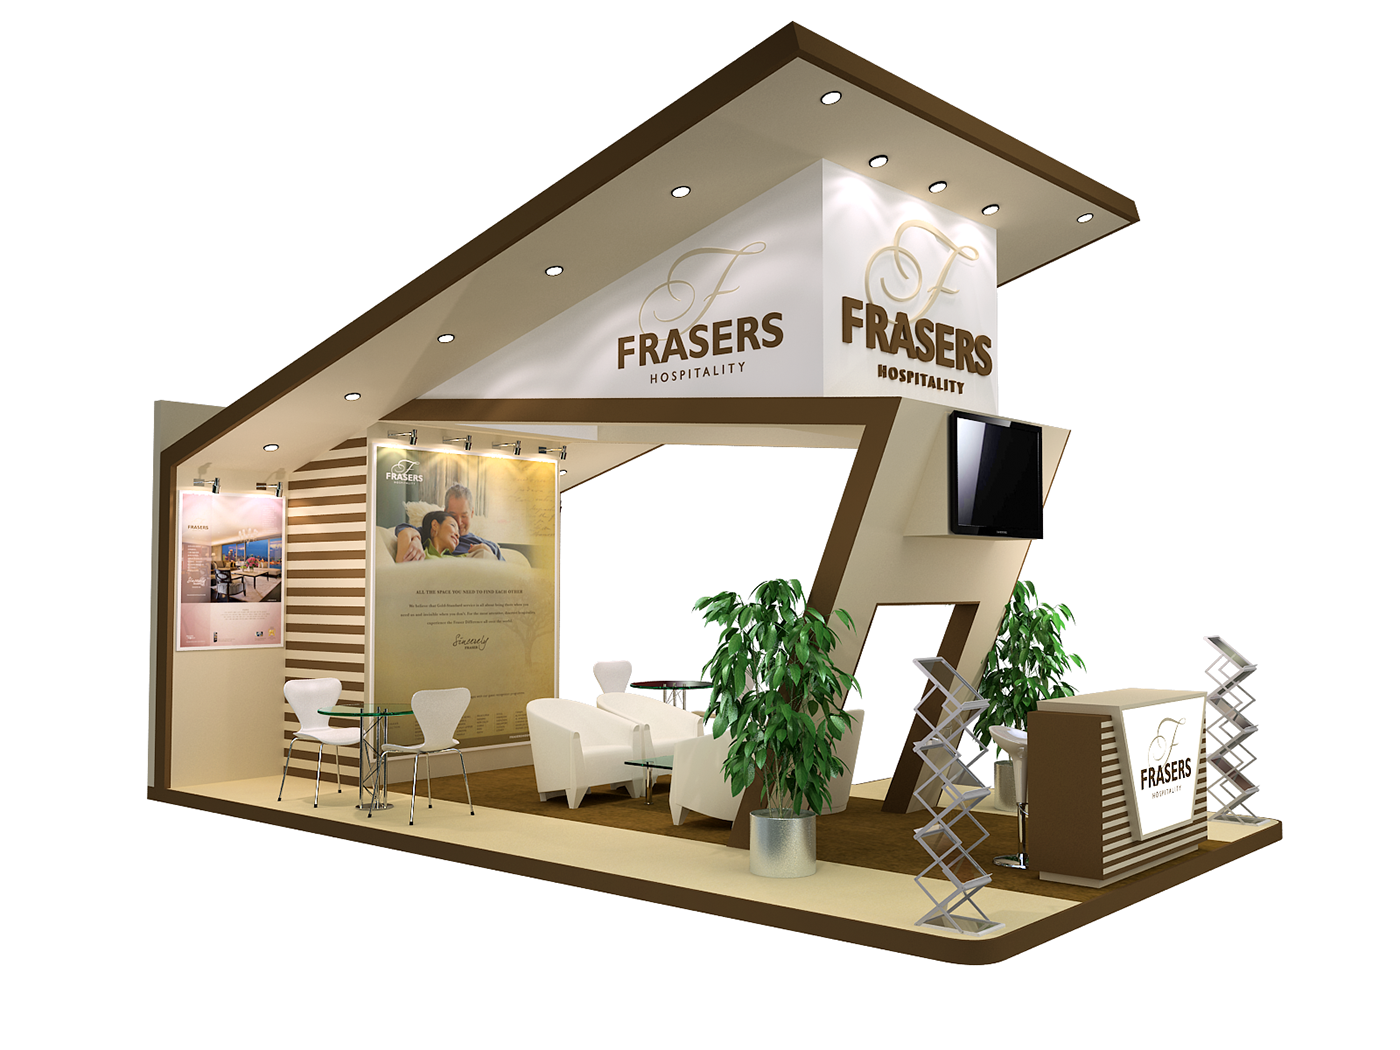 Exhibition Stand Designer Job Description : Custom made stands on behance